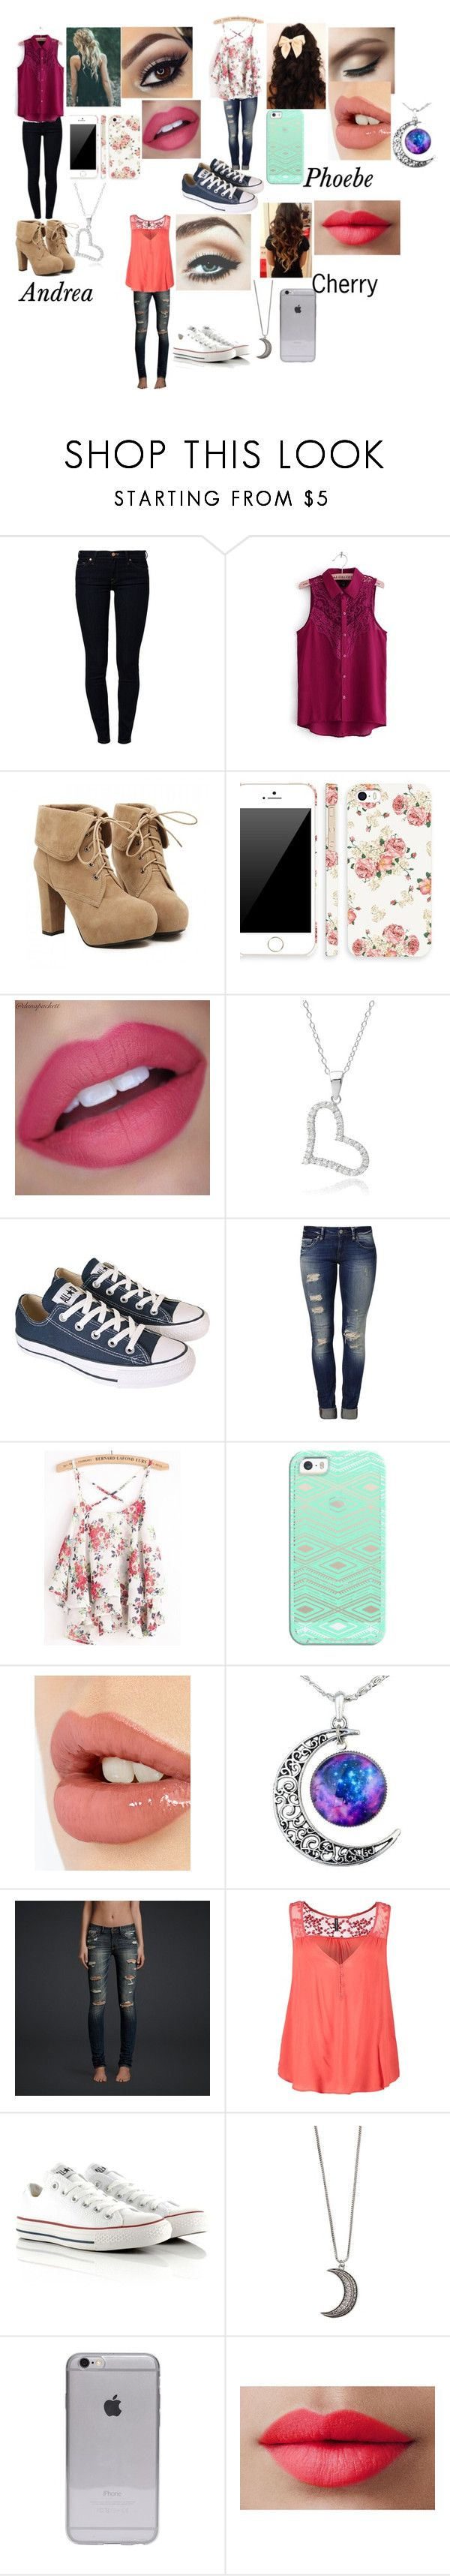 """""""Max Thunderman"""" by savannah-frisby ❤ liked on Polyvore featuring 7 For All Mankind, TURNOVER, Retrò, Tressa, Converse, Mavi, Casetify, Charlotte Tilbury, Hollister Co. and Naf Naf"""